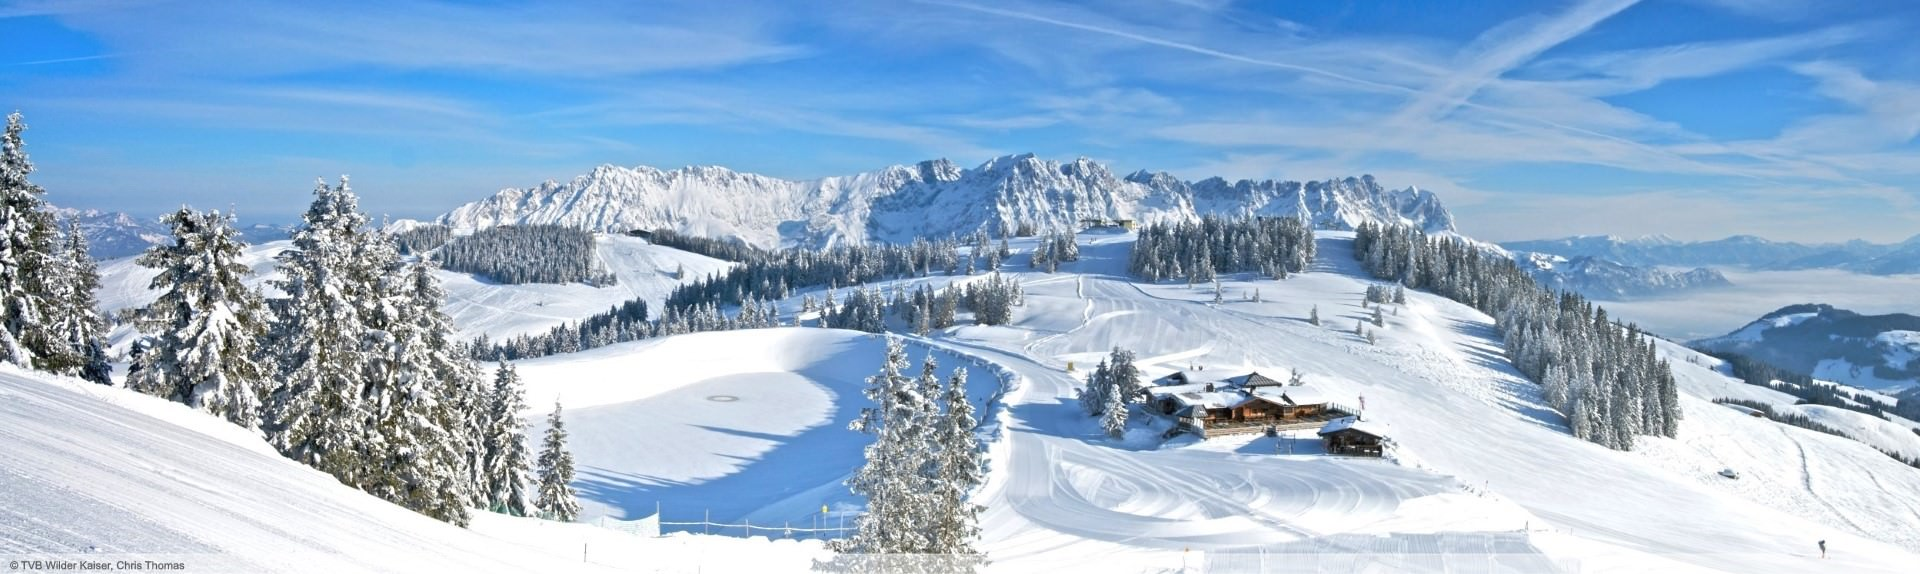 wintersport en aanbiedingen in Westendorf